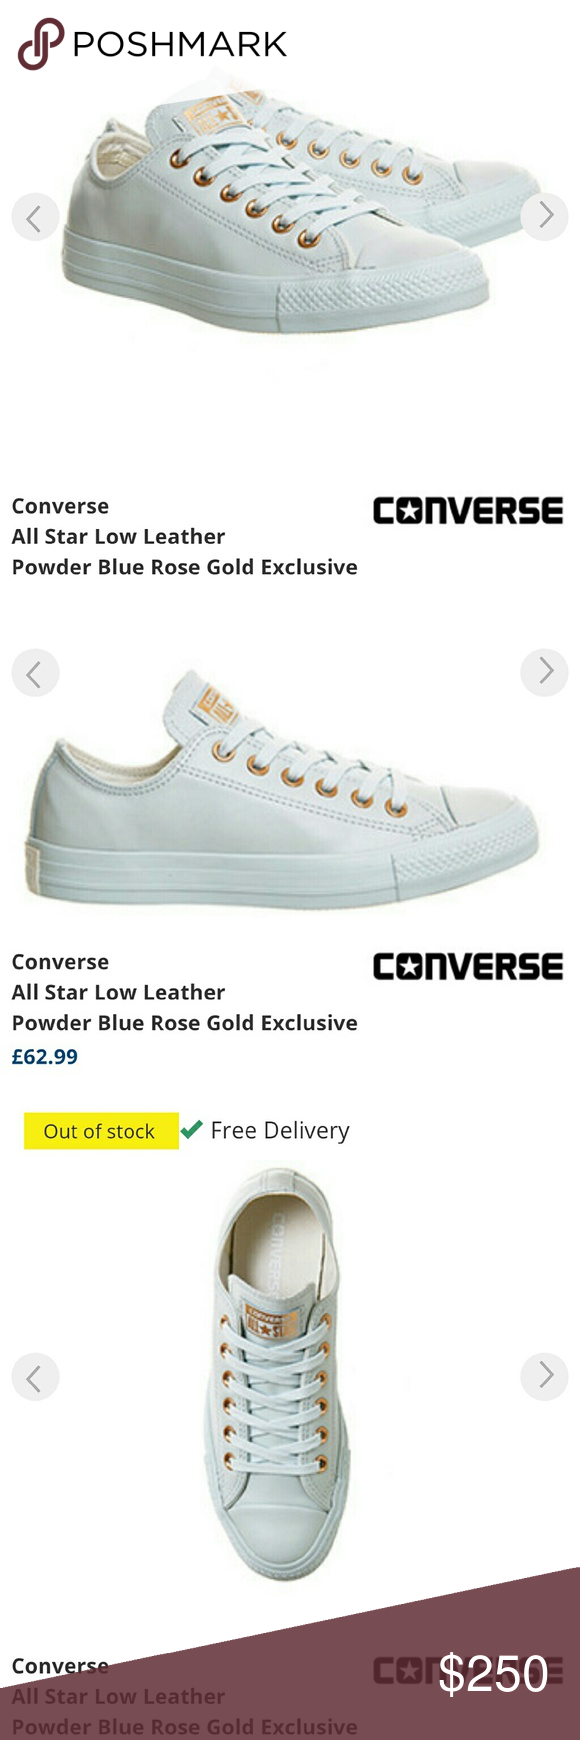 679e4ff35e5914 Converse Holiday Nudes Powder blue Rose Gold I got these from the exclusive  website selling this